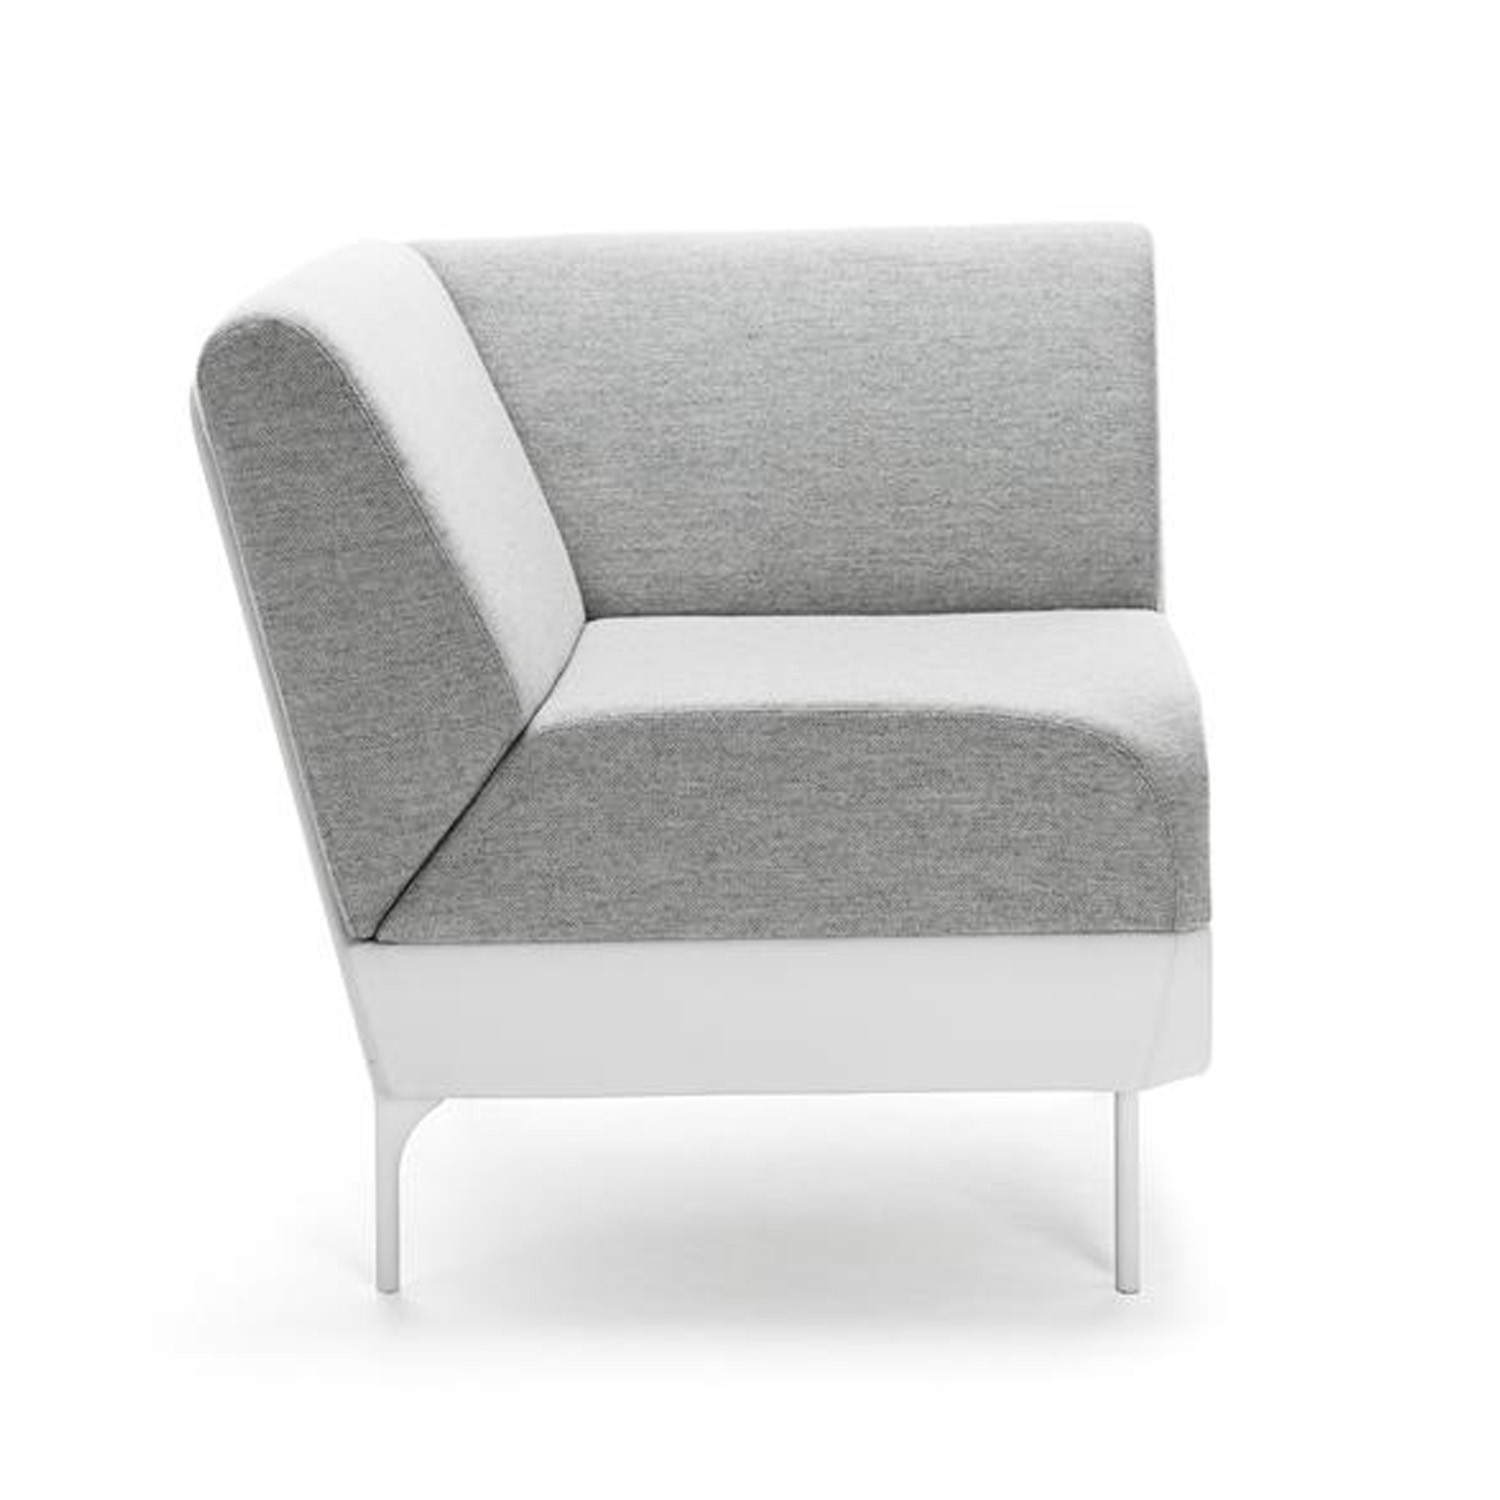 Addit Sofa Unit